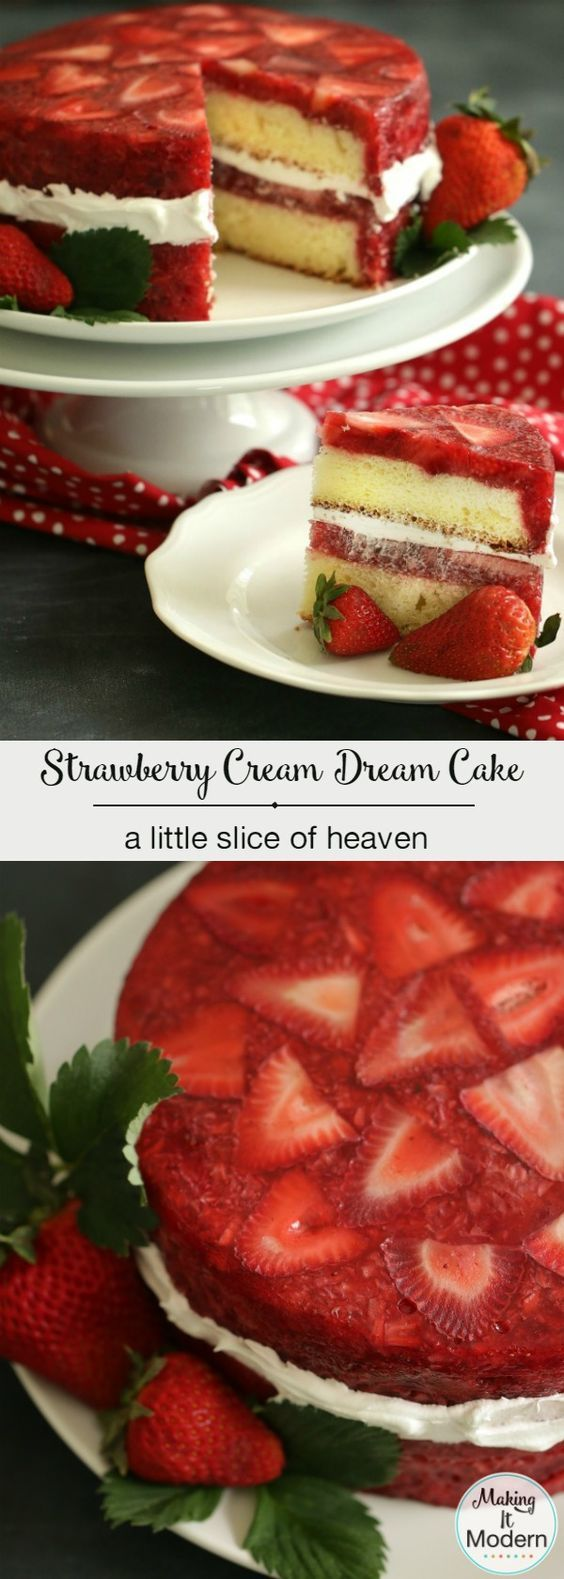 This strawberry cream dream cake is a little slice of heaven! Includes the vintage recipe and a fun how-to video!